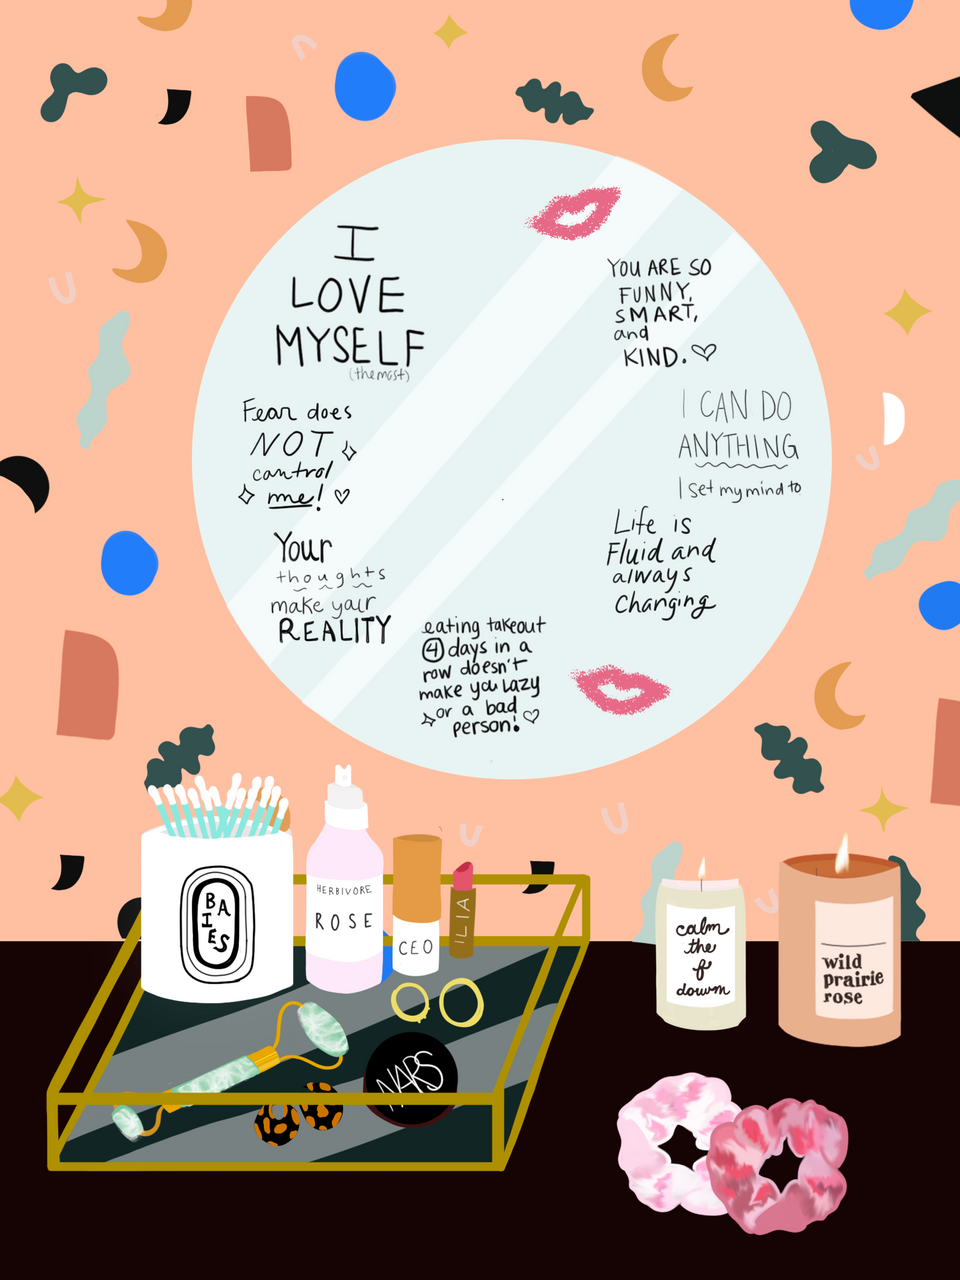 The Art Of Self-Love - How I am Finally Learning To Love Myself